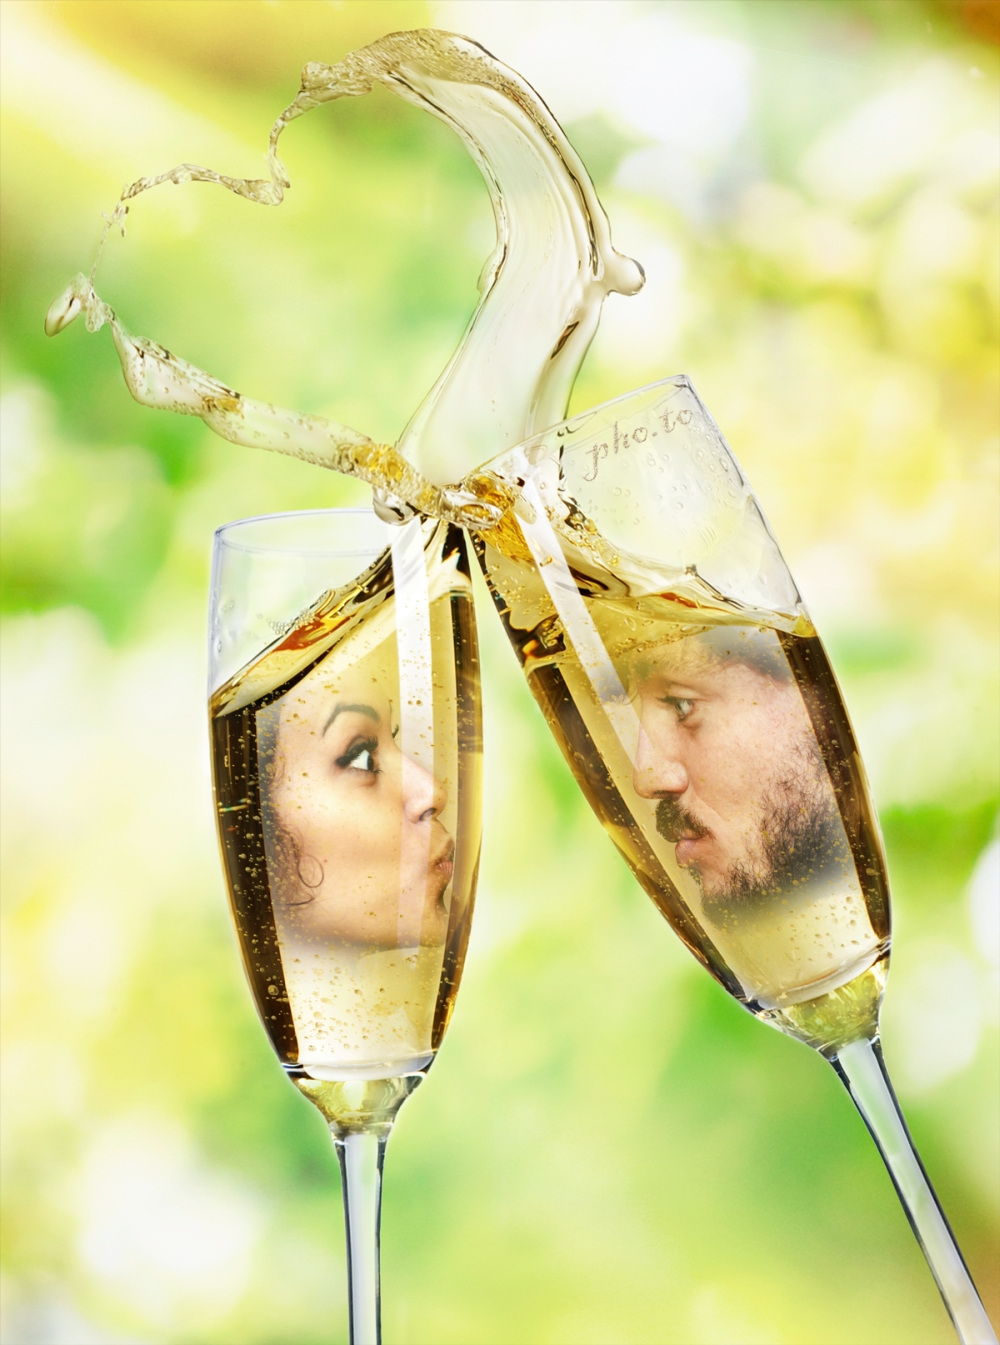 A kiss through a glass of an elegant wine glass.